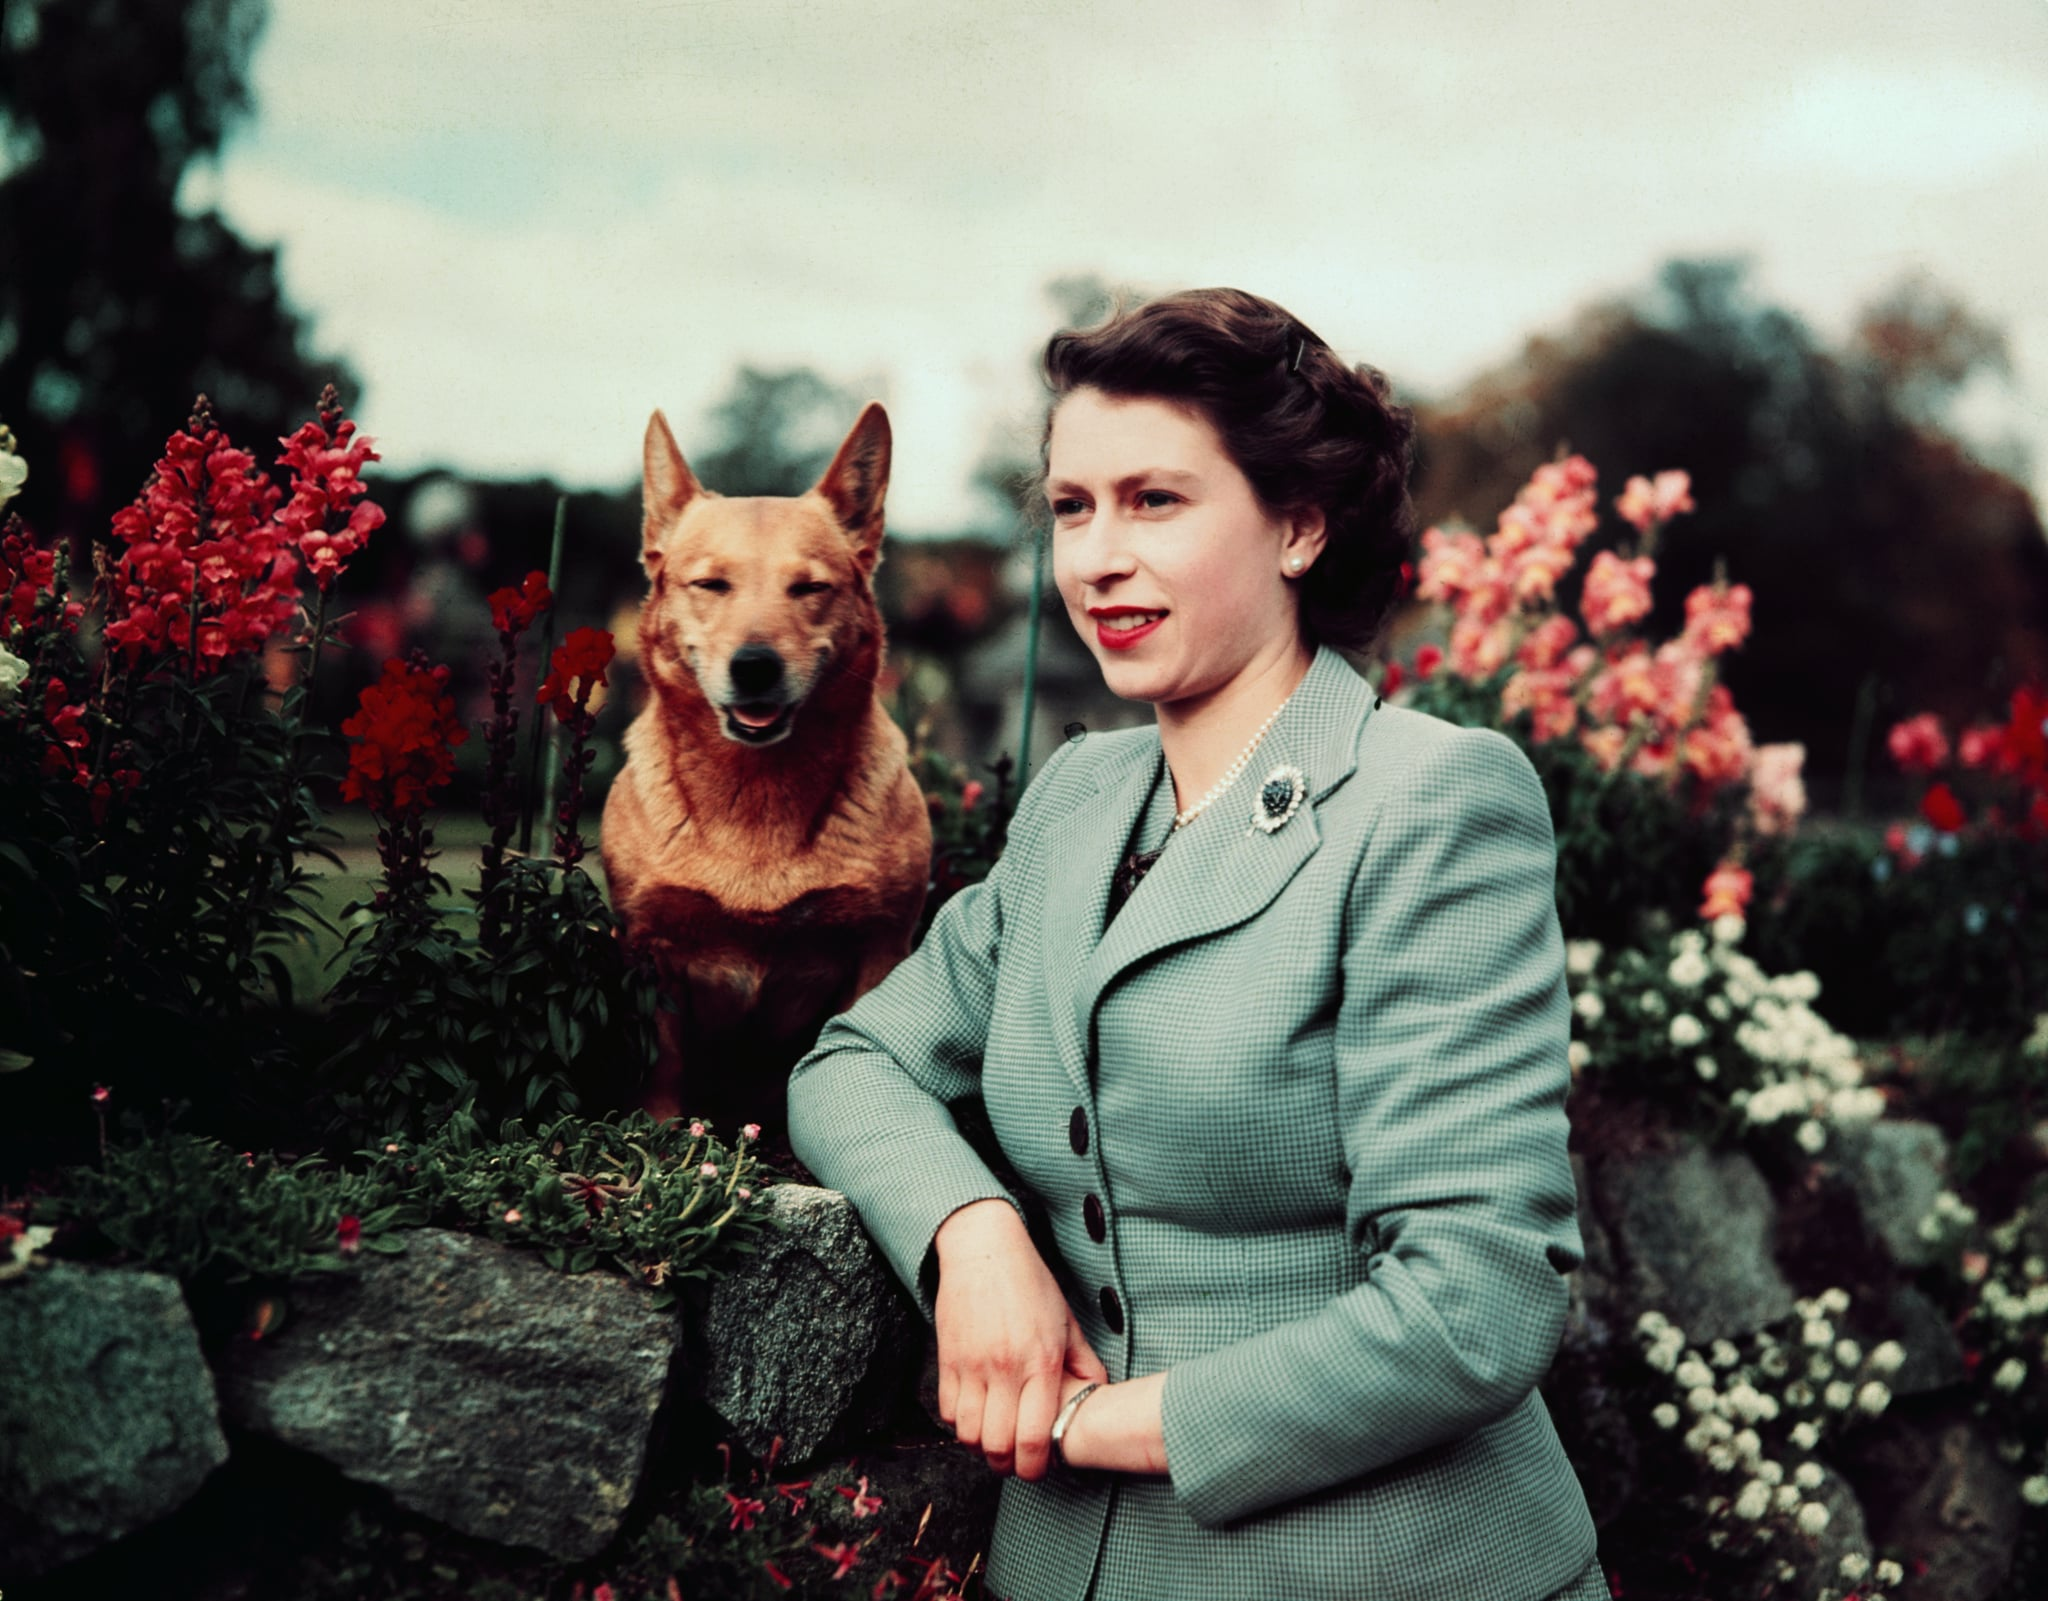 March,1953- Queen Elizabeth II of England--closeup in garden with dog. UPI color slide.